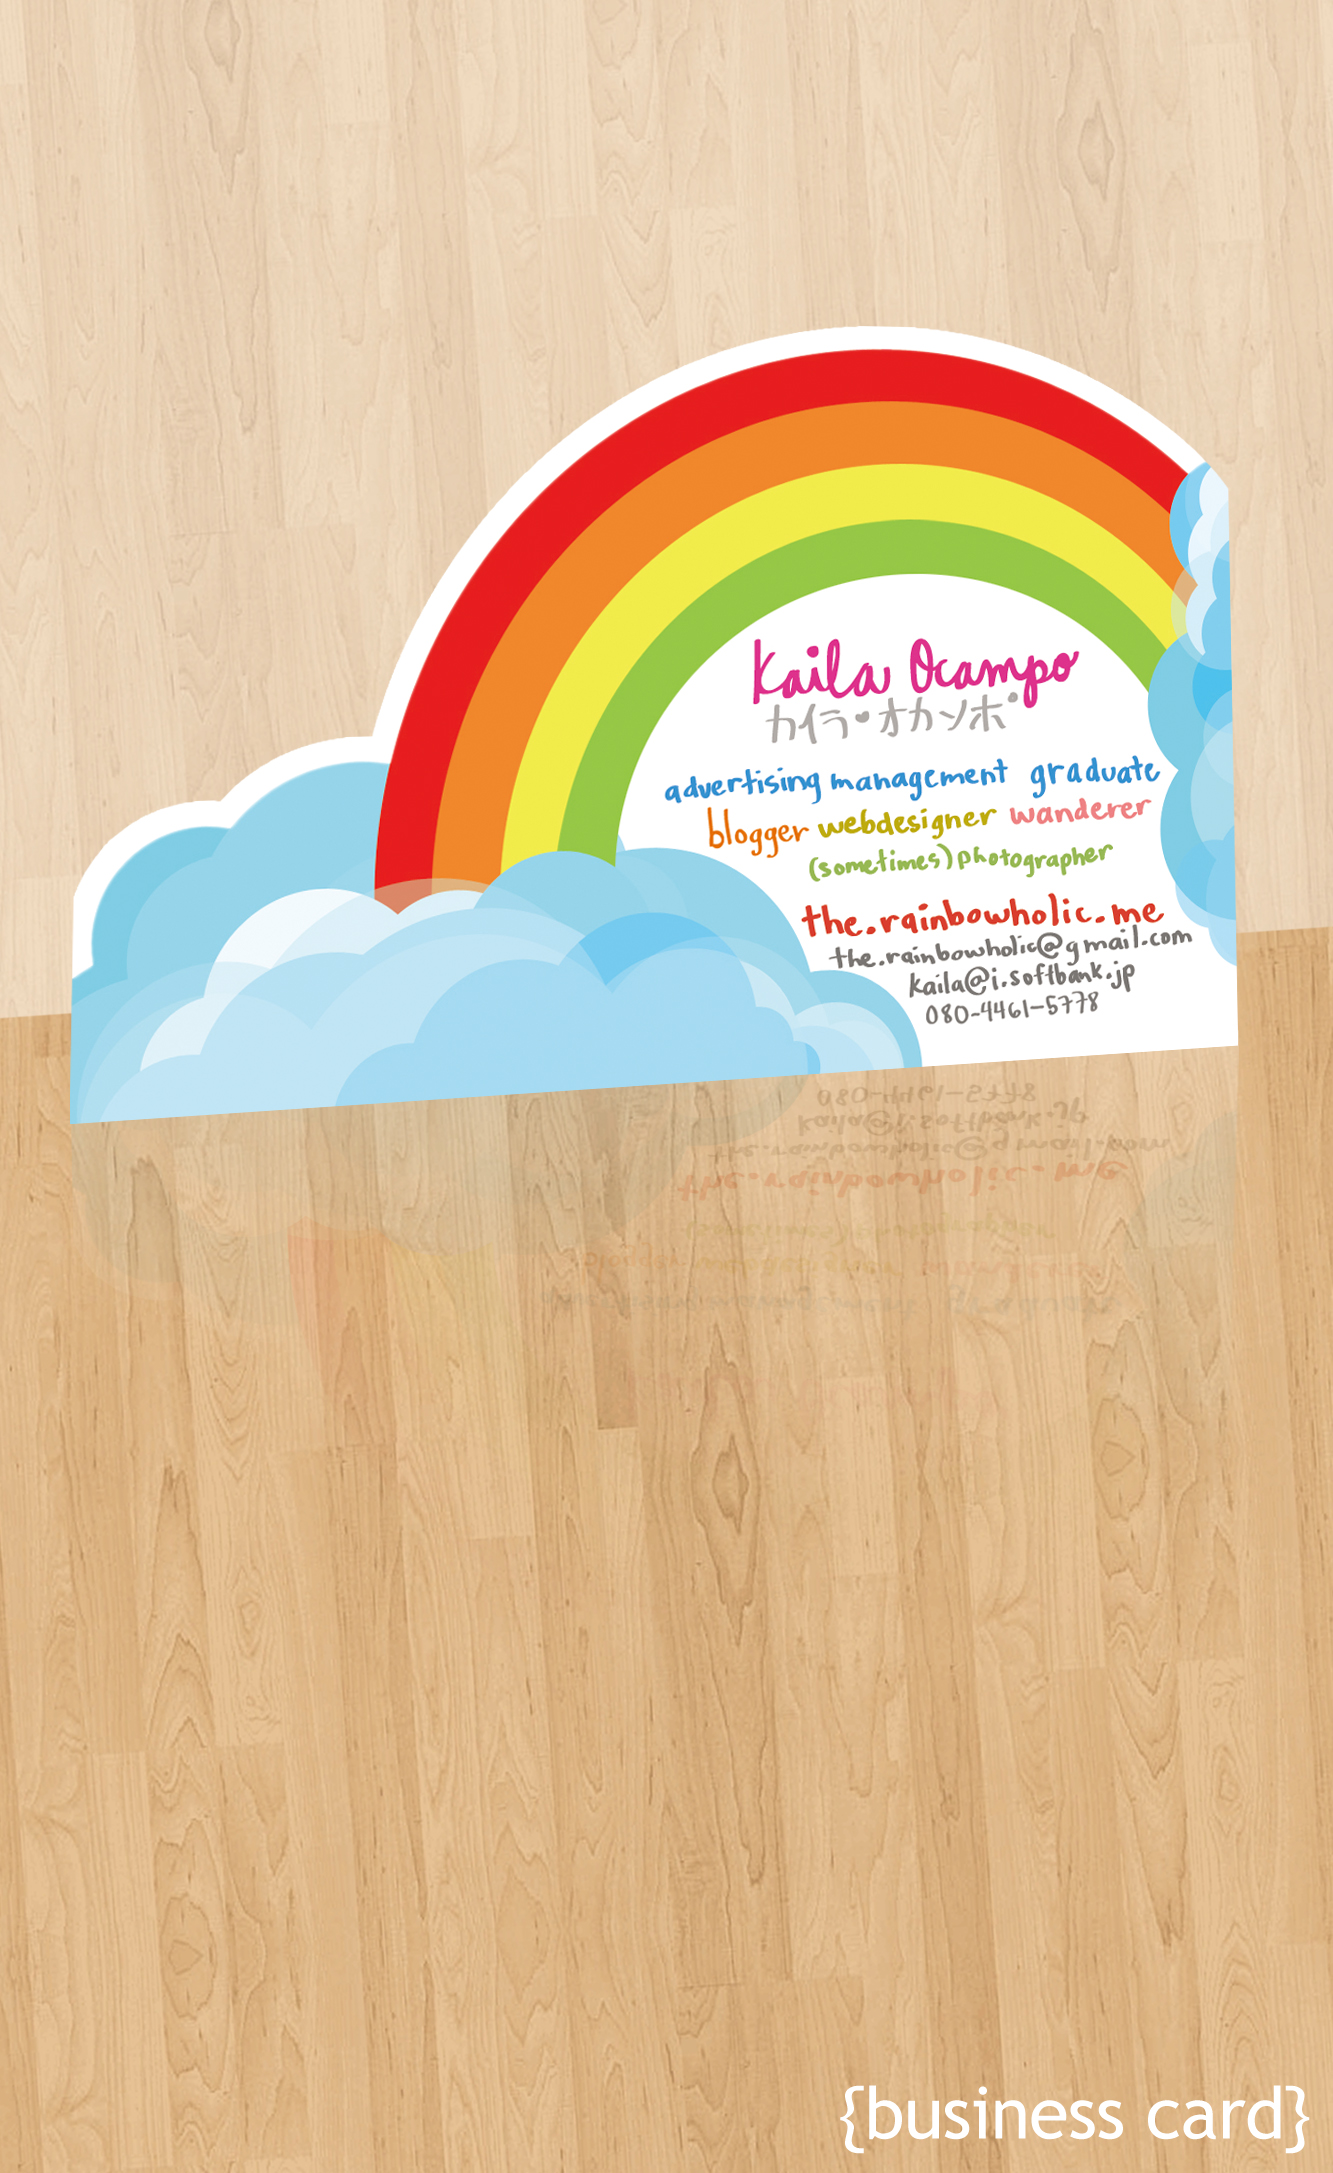 kaila business card.JPG (1333×2173)